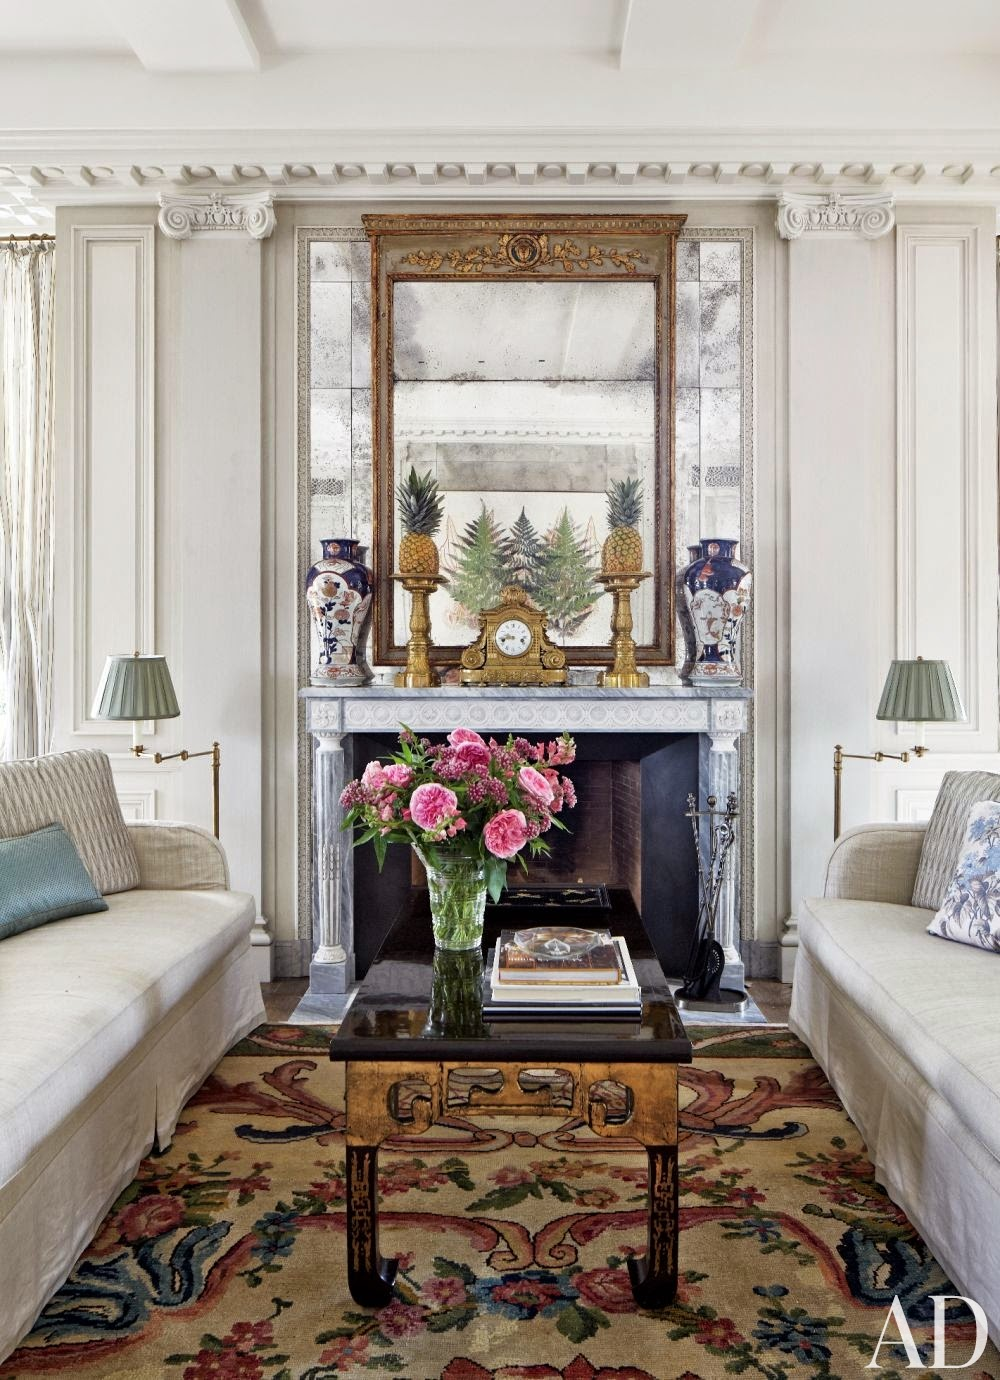 Decor Inspiration  The New Traditionalist Darryl Carter Interior Designer  Washington DC  Cool Chic Style Fashion